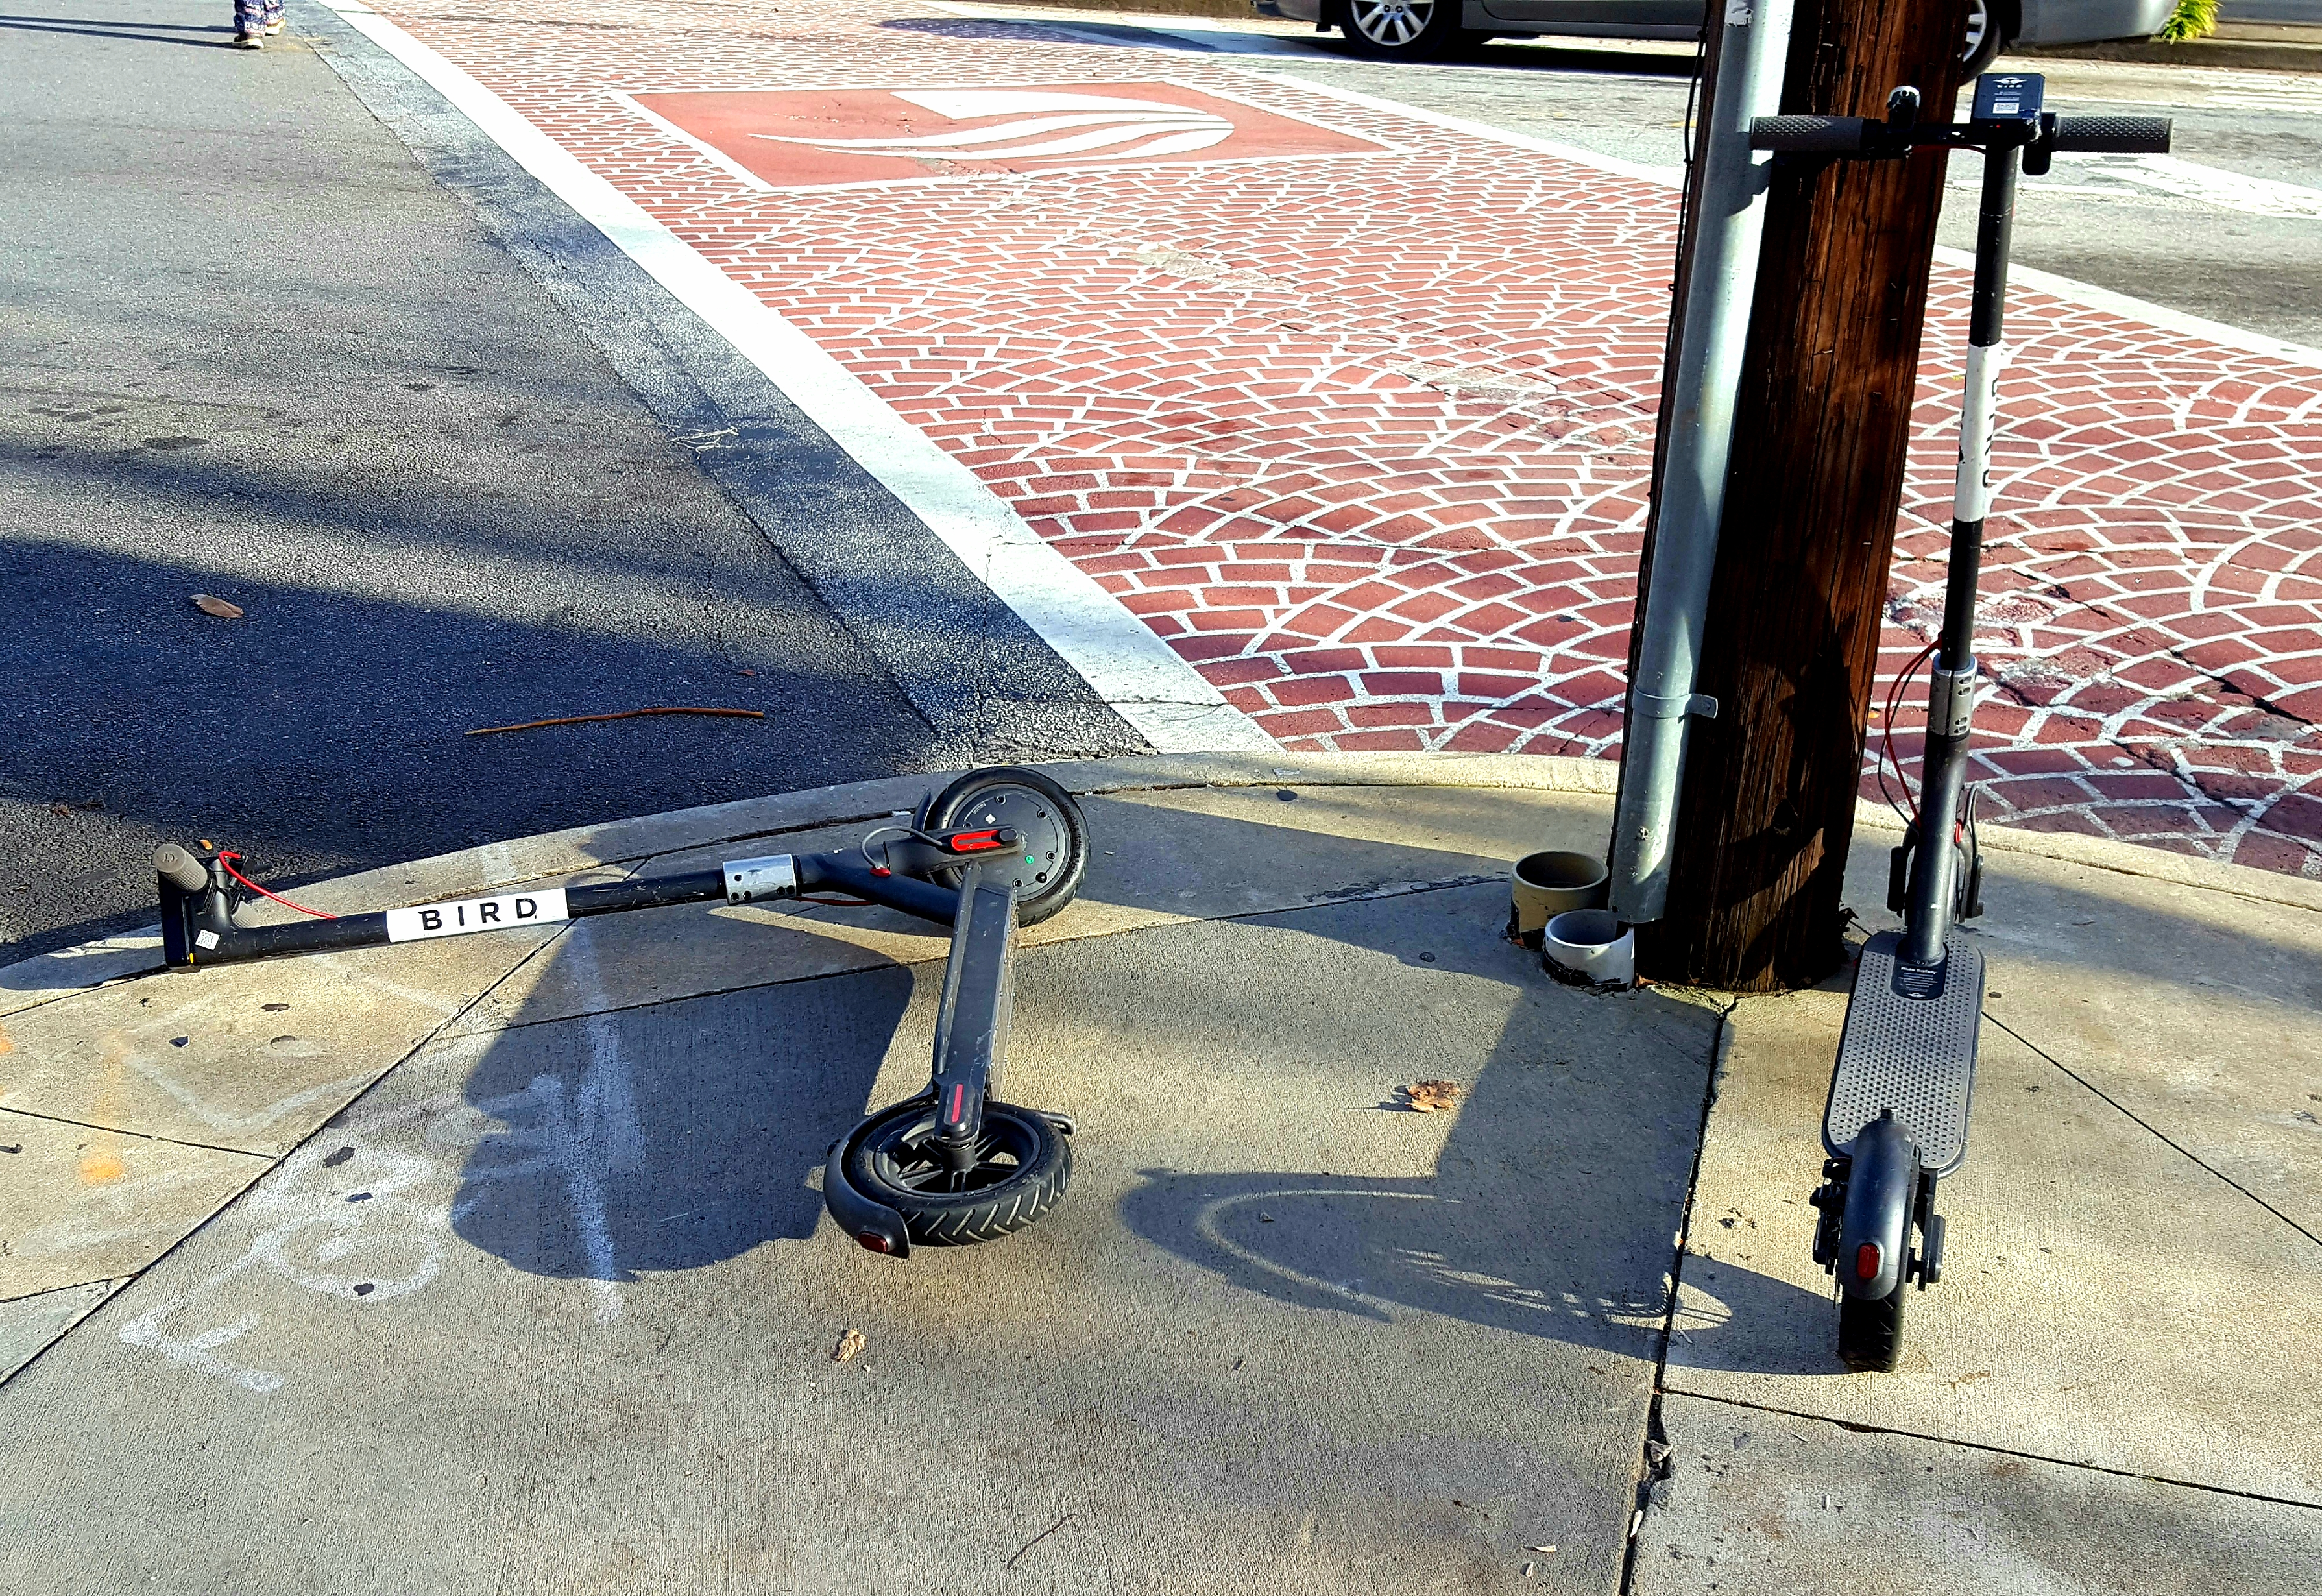 A picture of two Bird e-scooters parked on a sidewalk, one knocked over on its side.